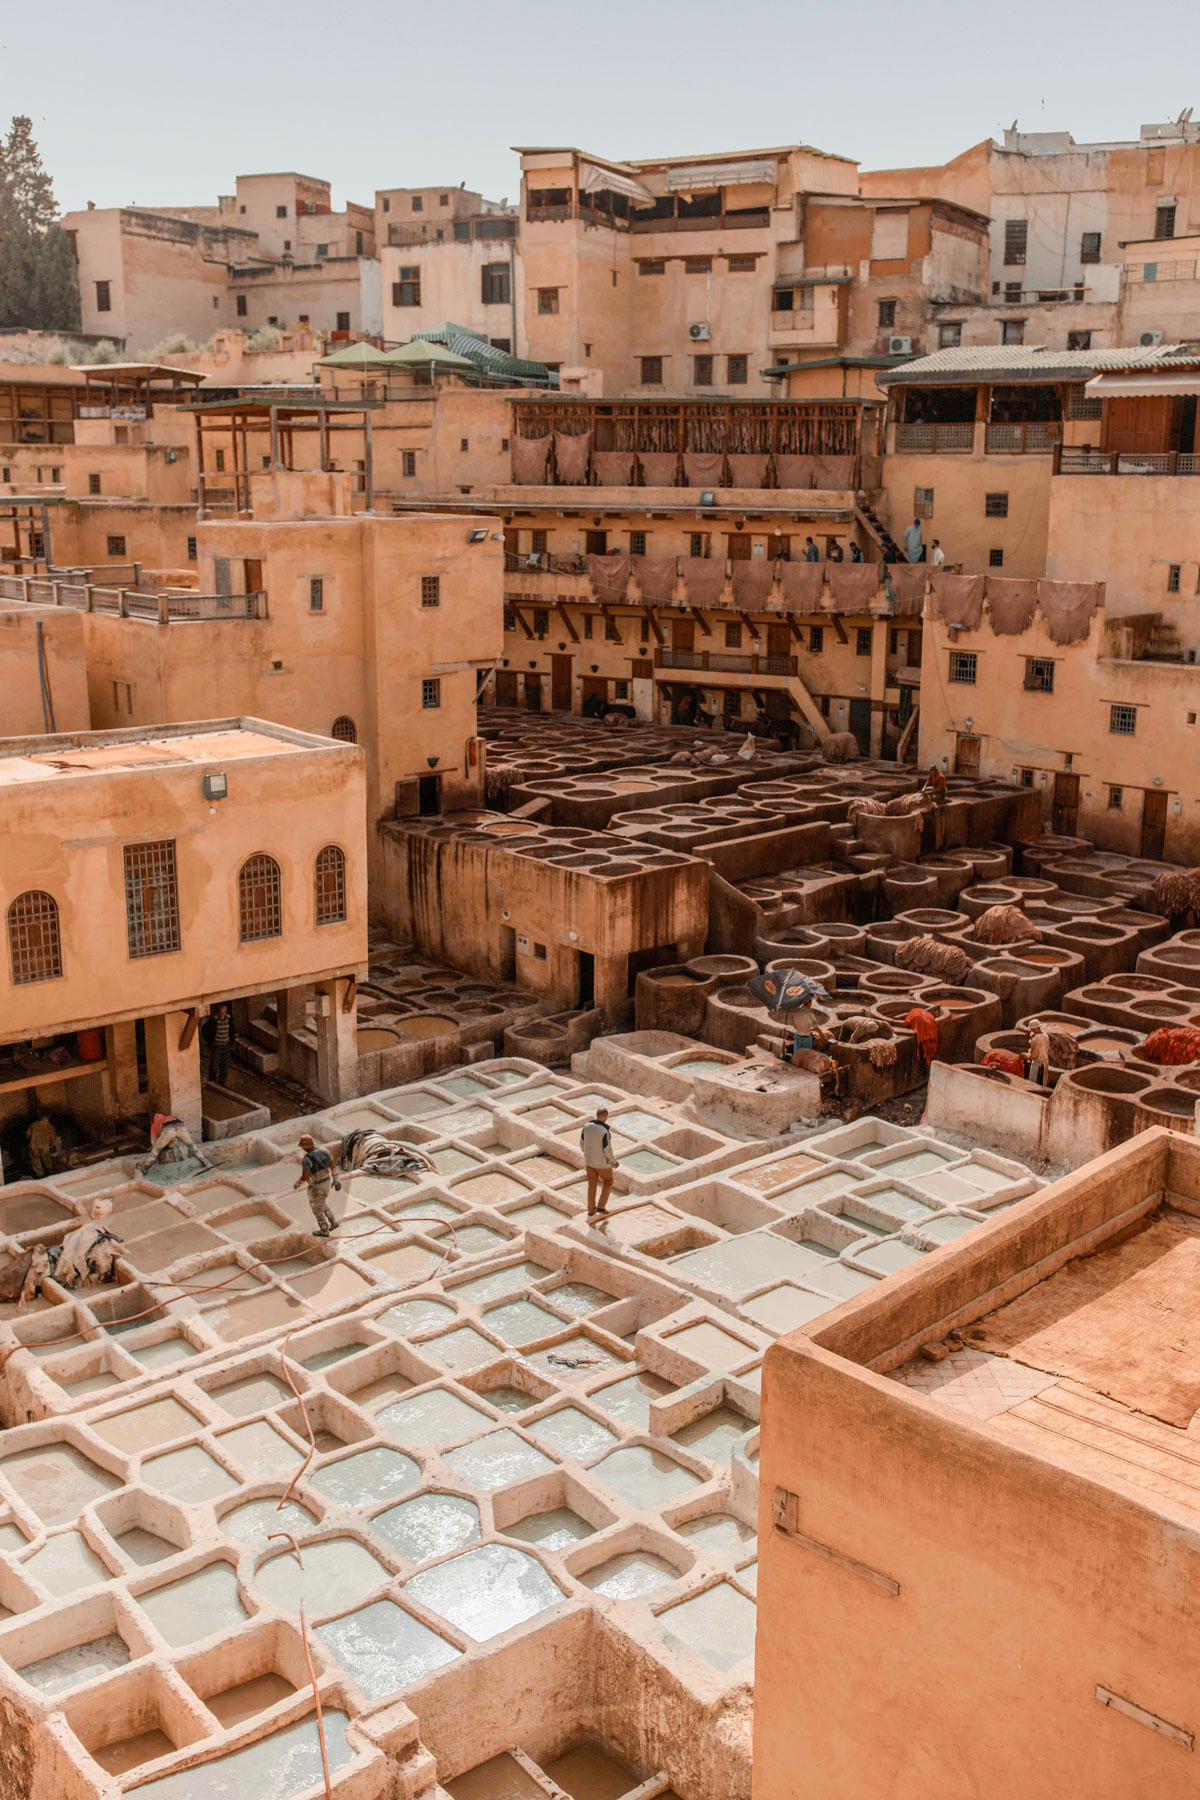 Top-things-to-do-in-Fez-Bucket-list-kelseyinlondon-Kelsey-Heinrichs--What-to-do-in-Fez--Where-to-go-in-Fez-top-places-in-Fez-Chouara-Tannery